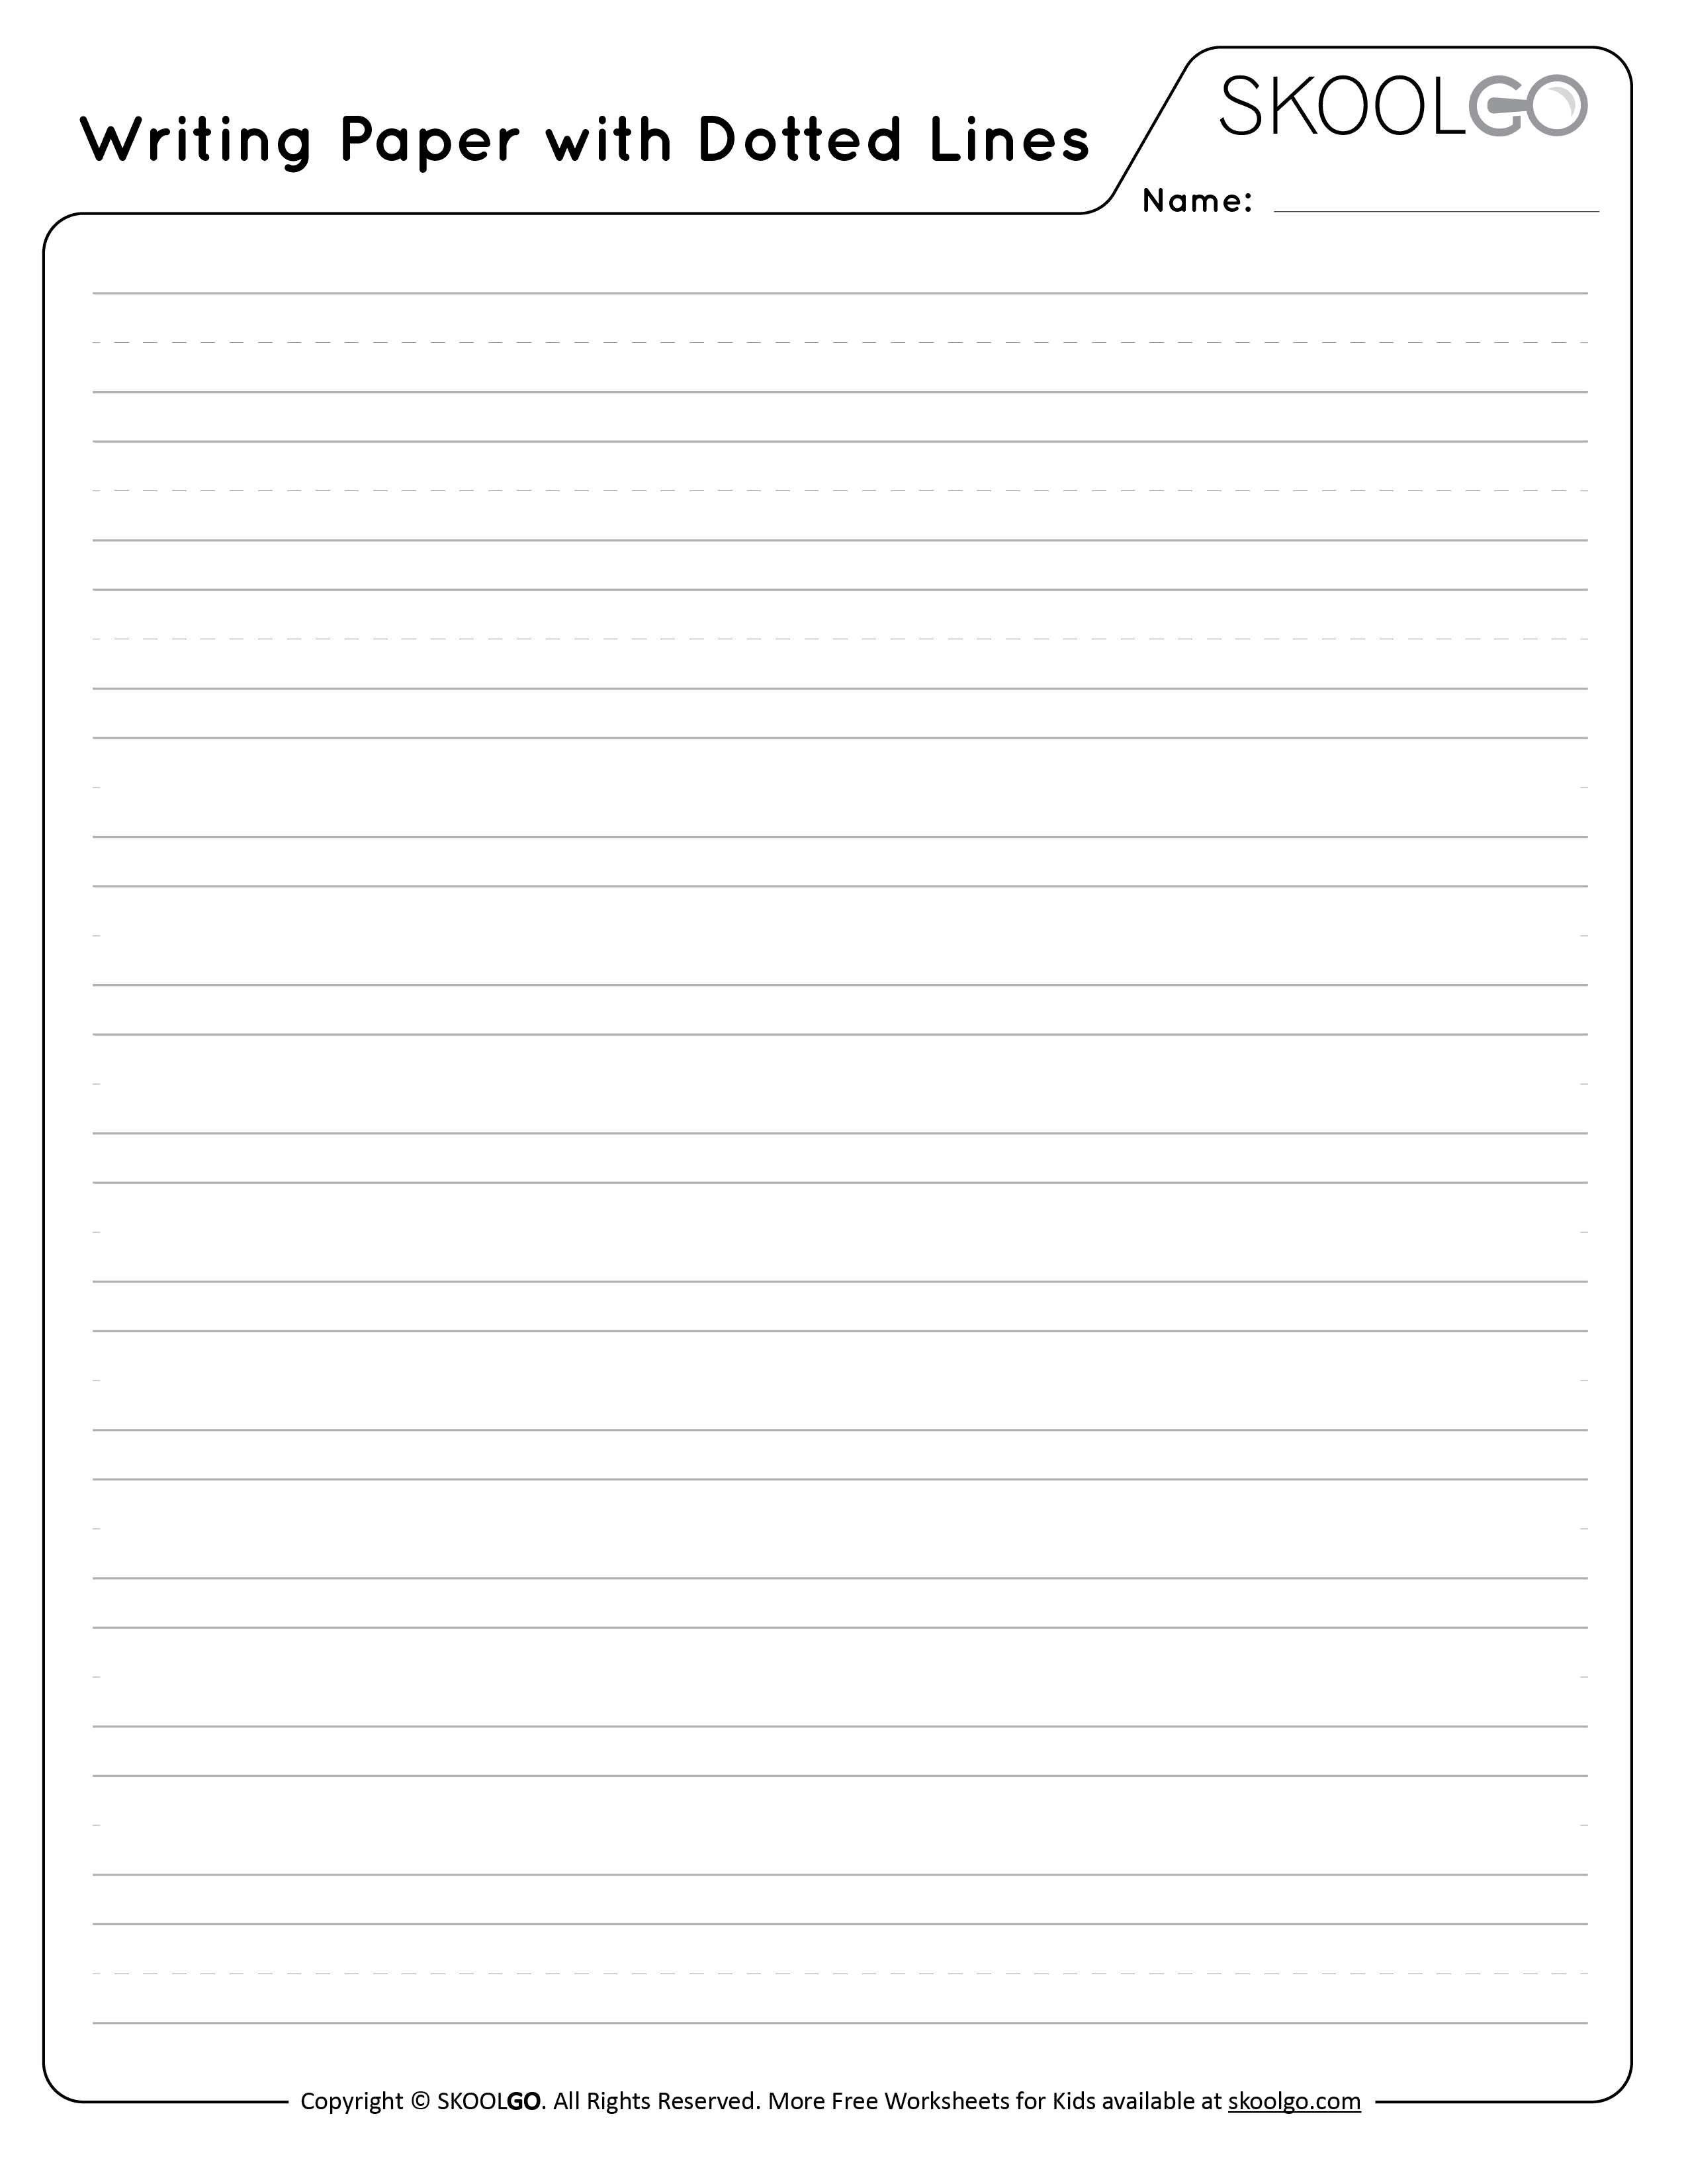 Writing Paper with Dotted Lines - Free Black and White Worksheet for Kids